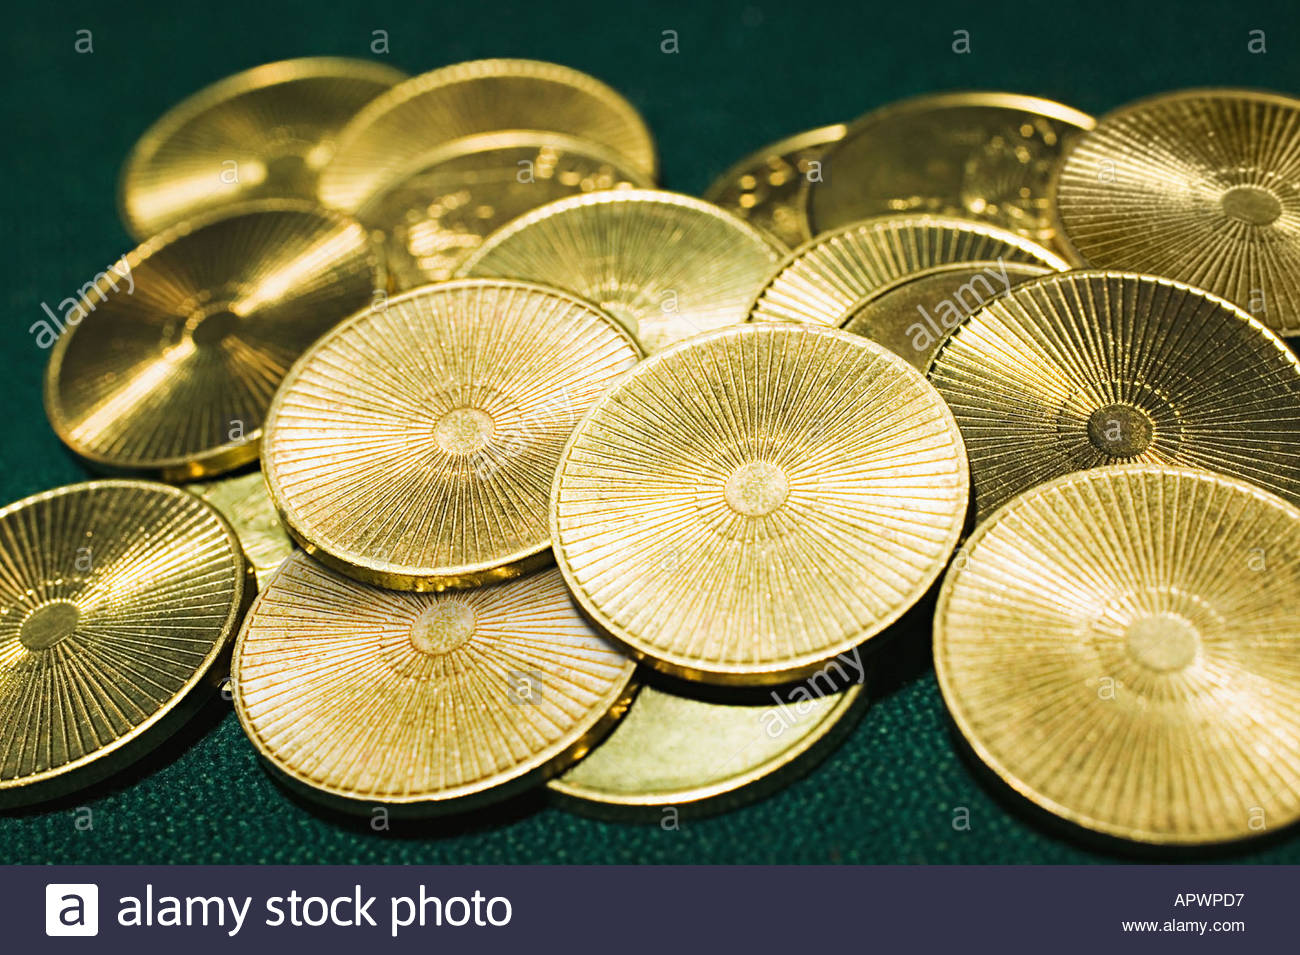 Pile of gold coins - Stock Image